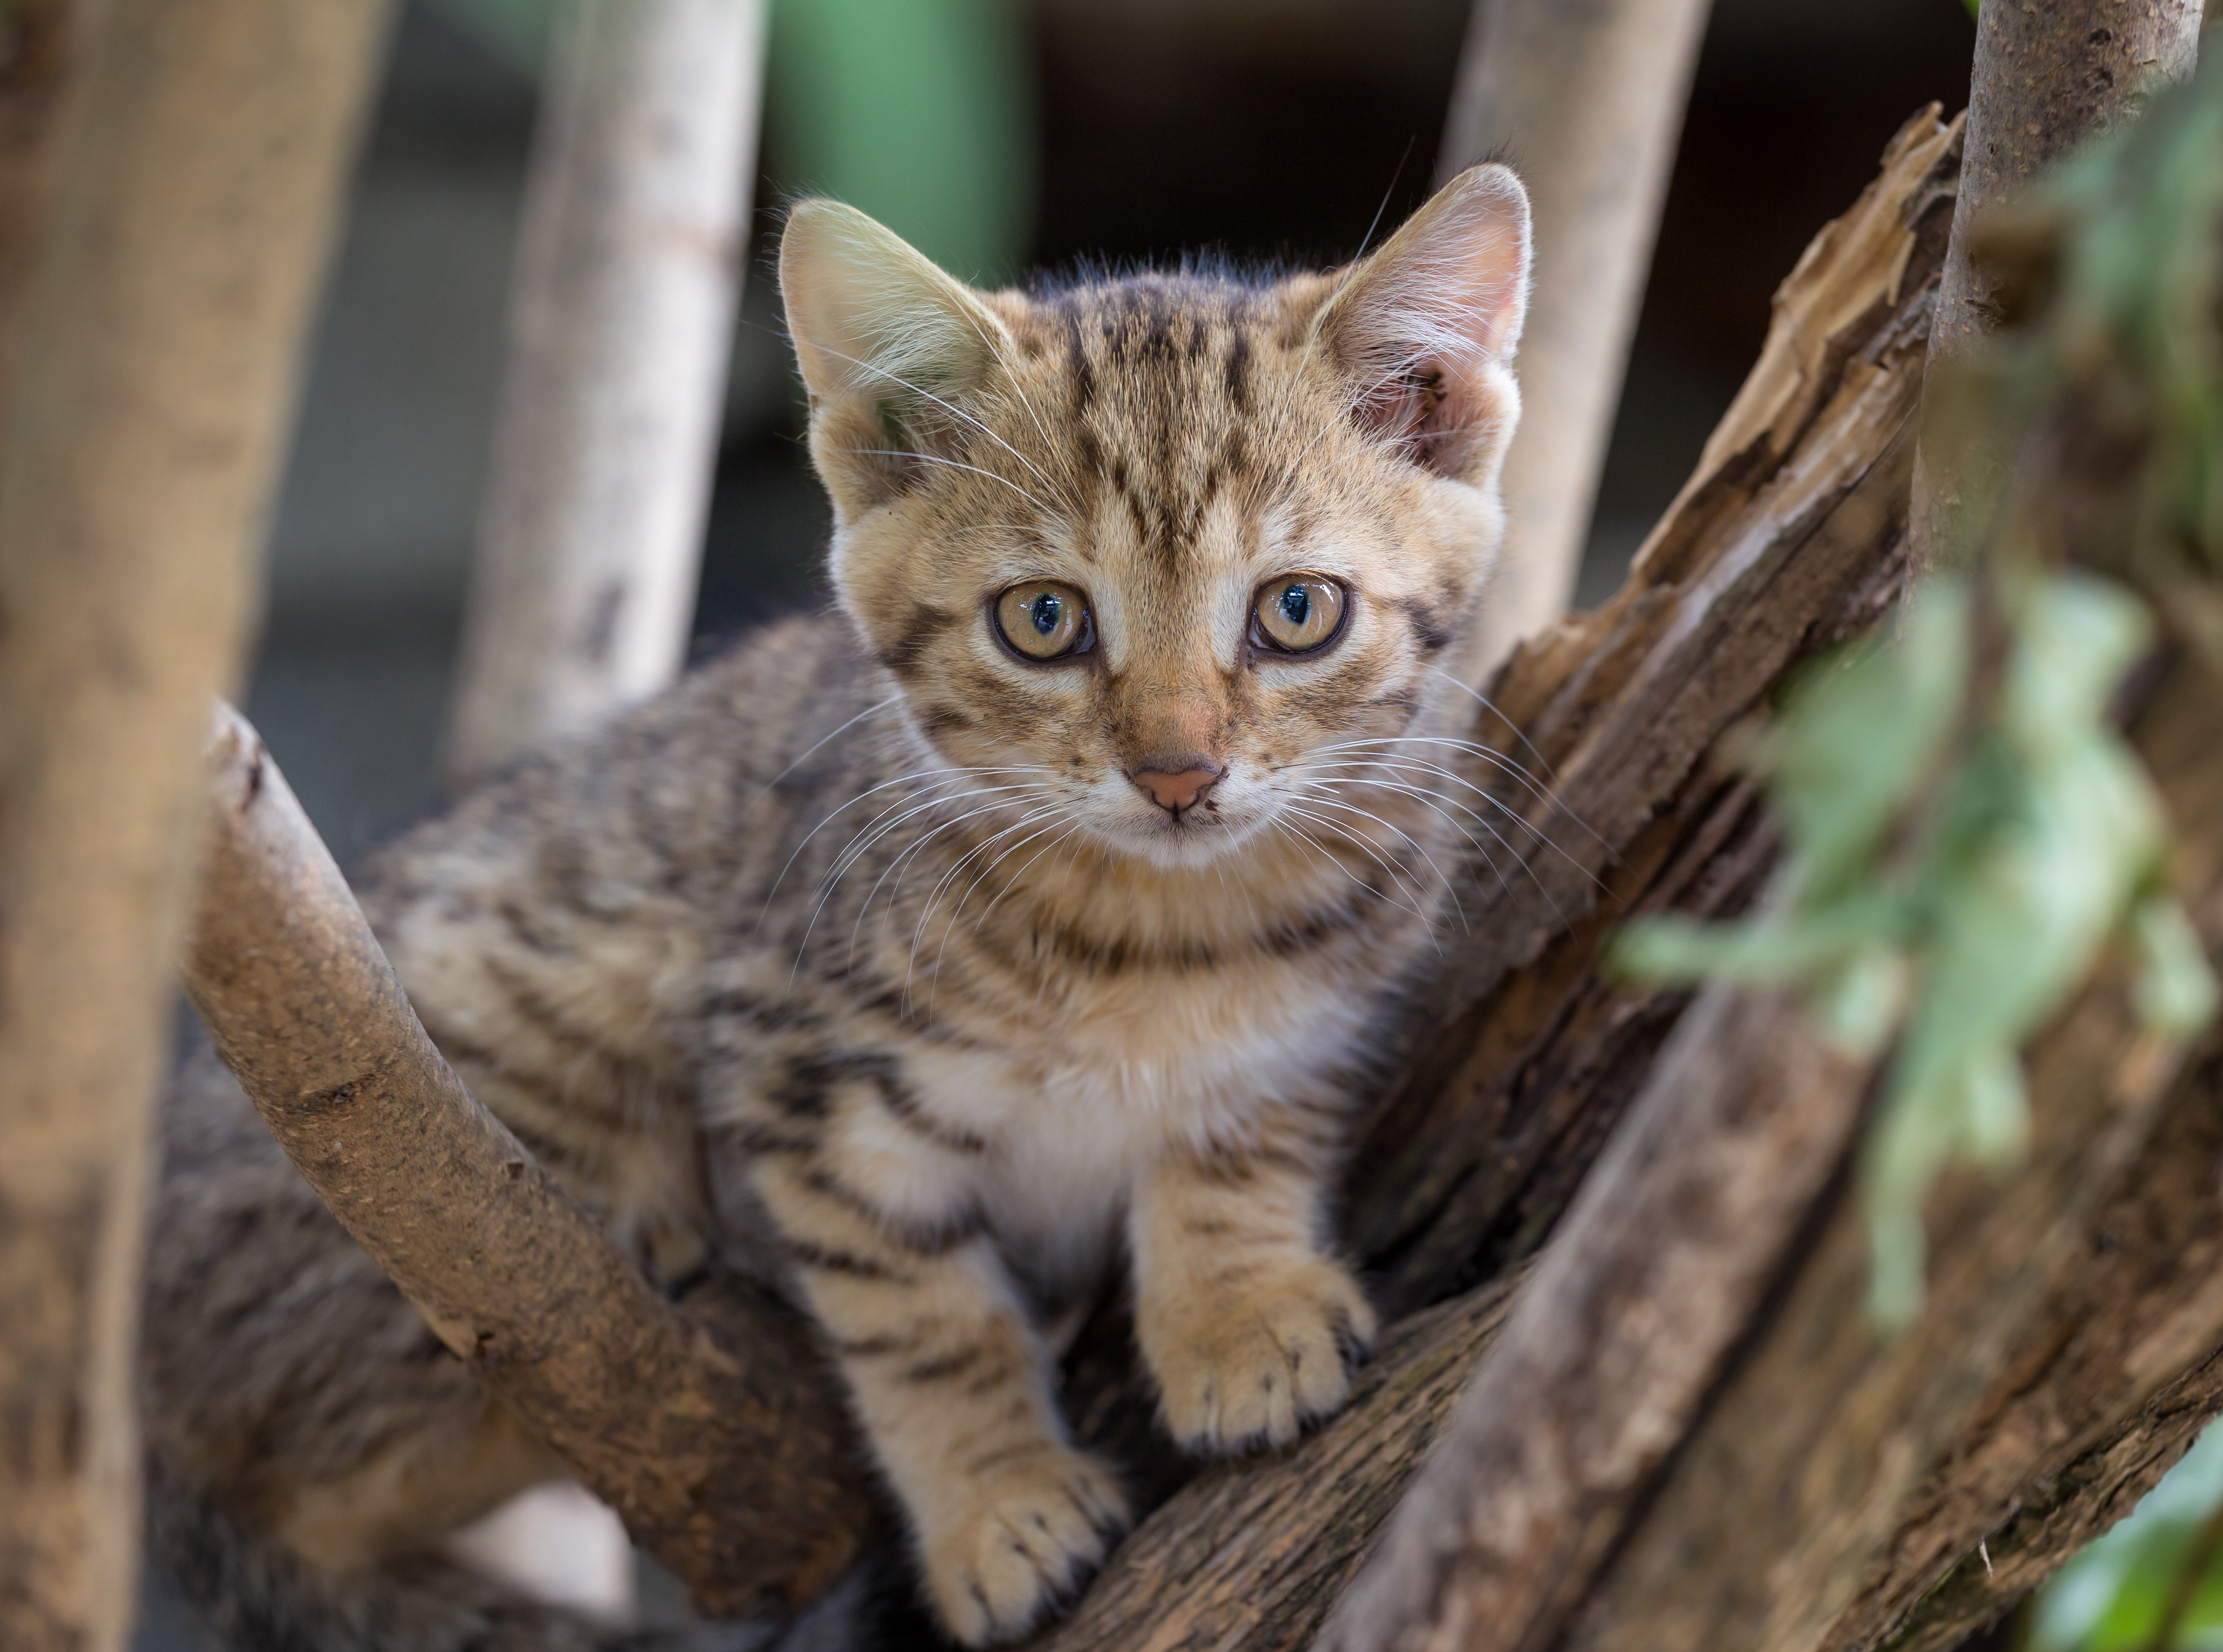 Brown Tabby Kitten on Tree Branch, Adorable, Kitten, Tree, Portrait, HQ Photo